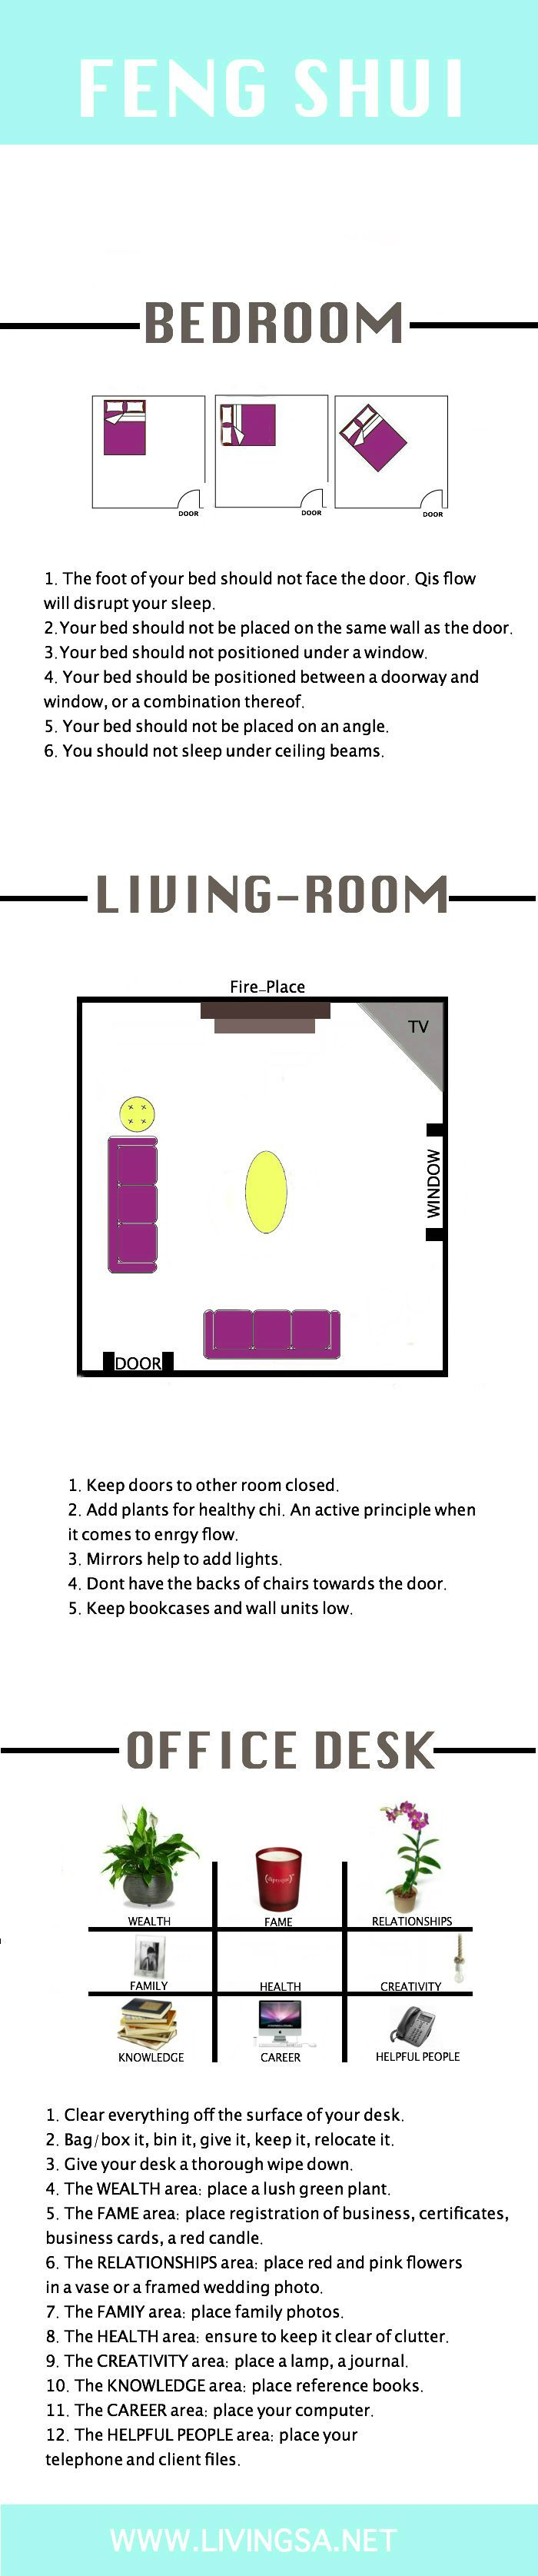 25 great ideas about furniture placement on pinterest - Bed placement rules ...